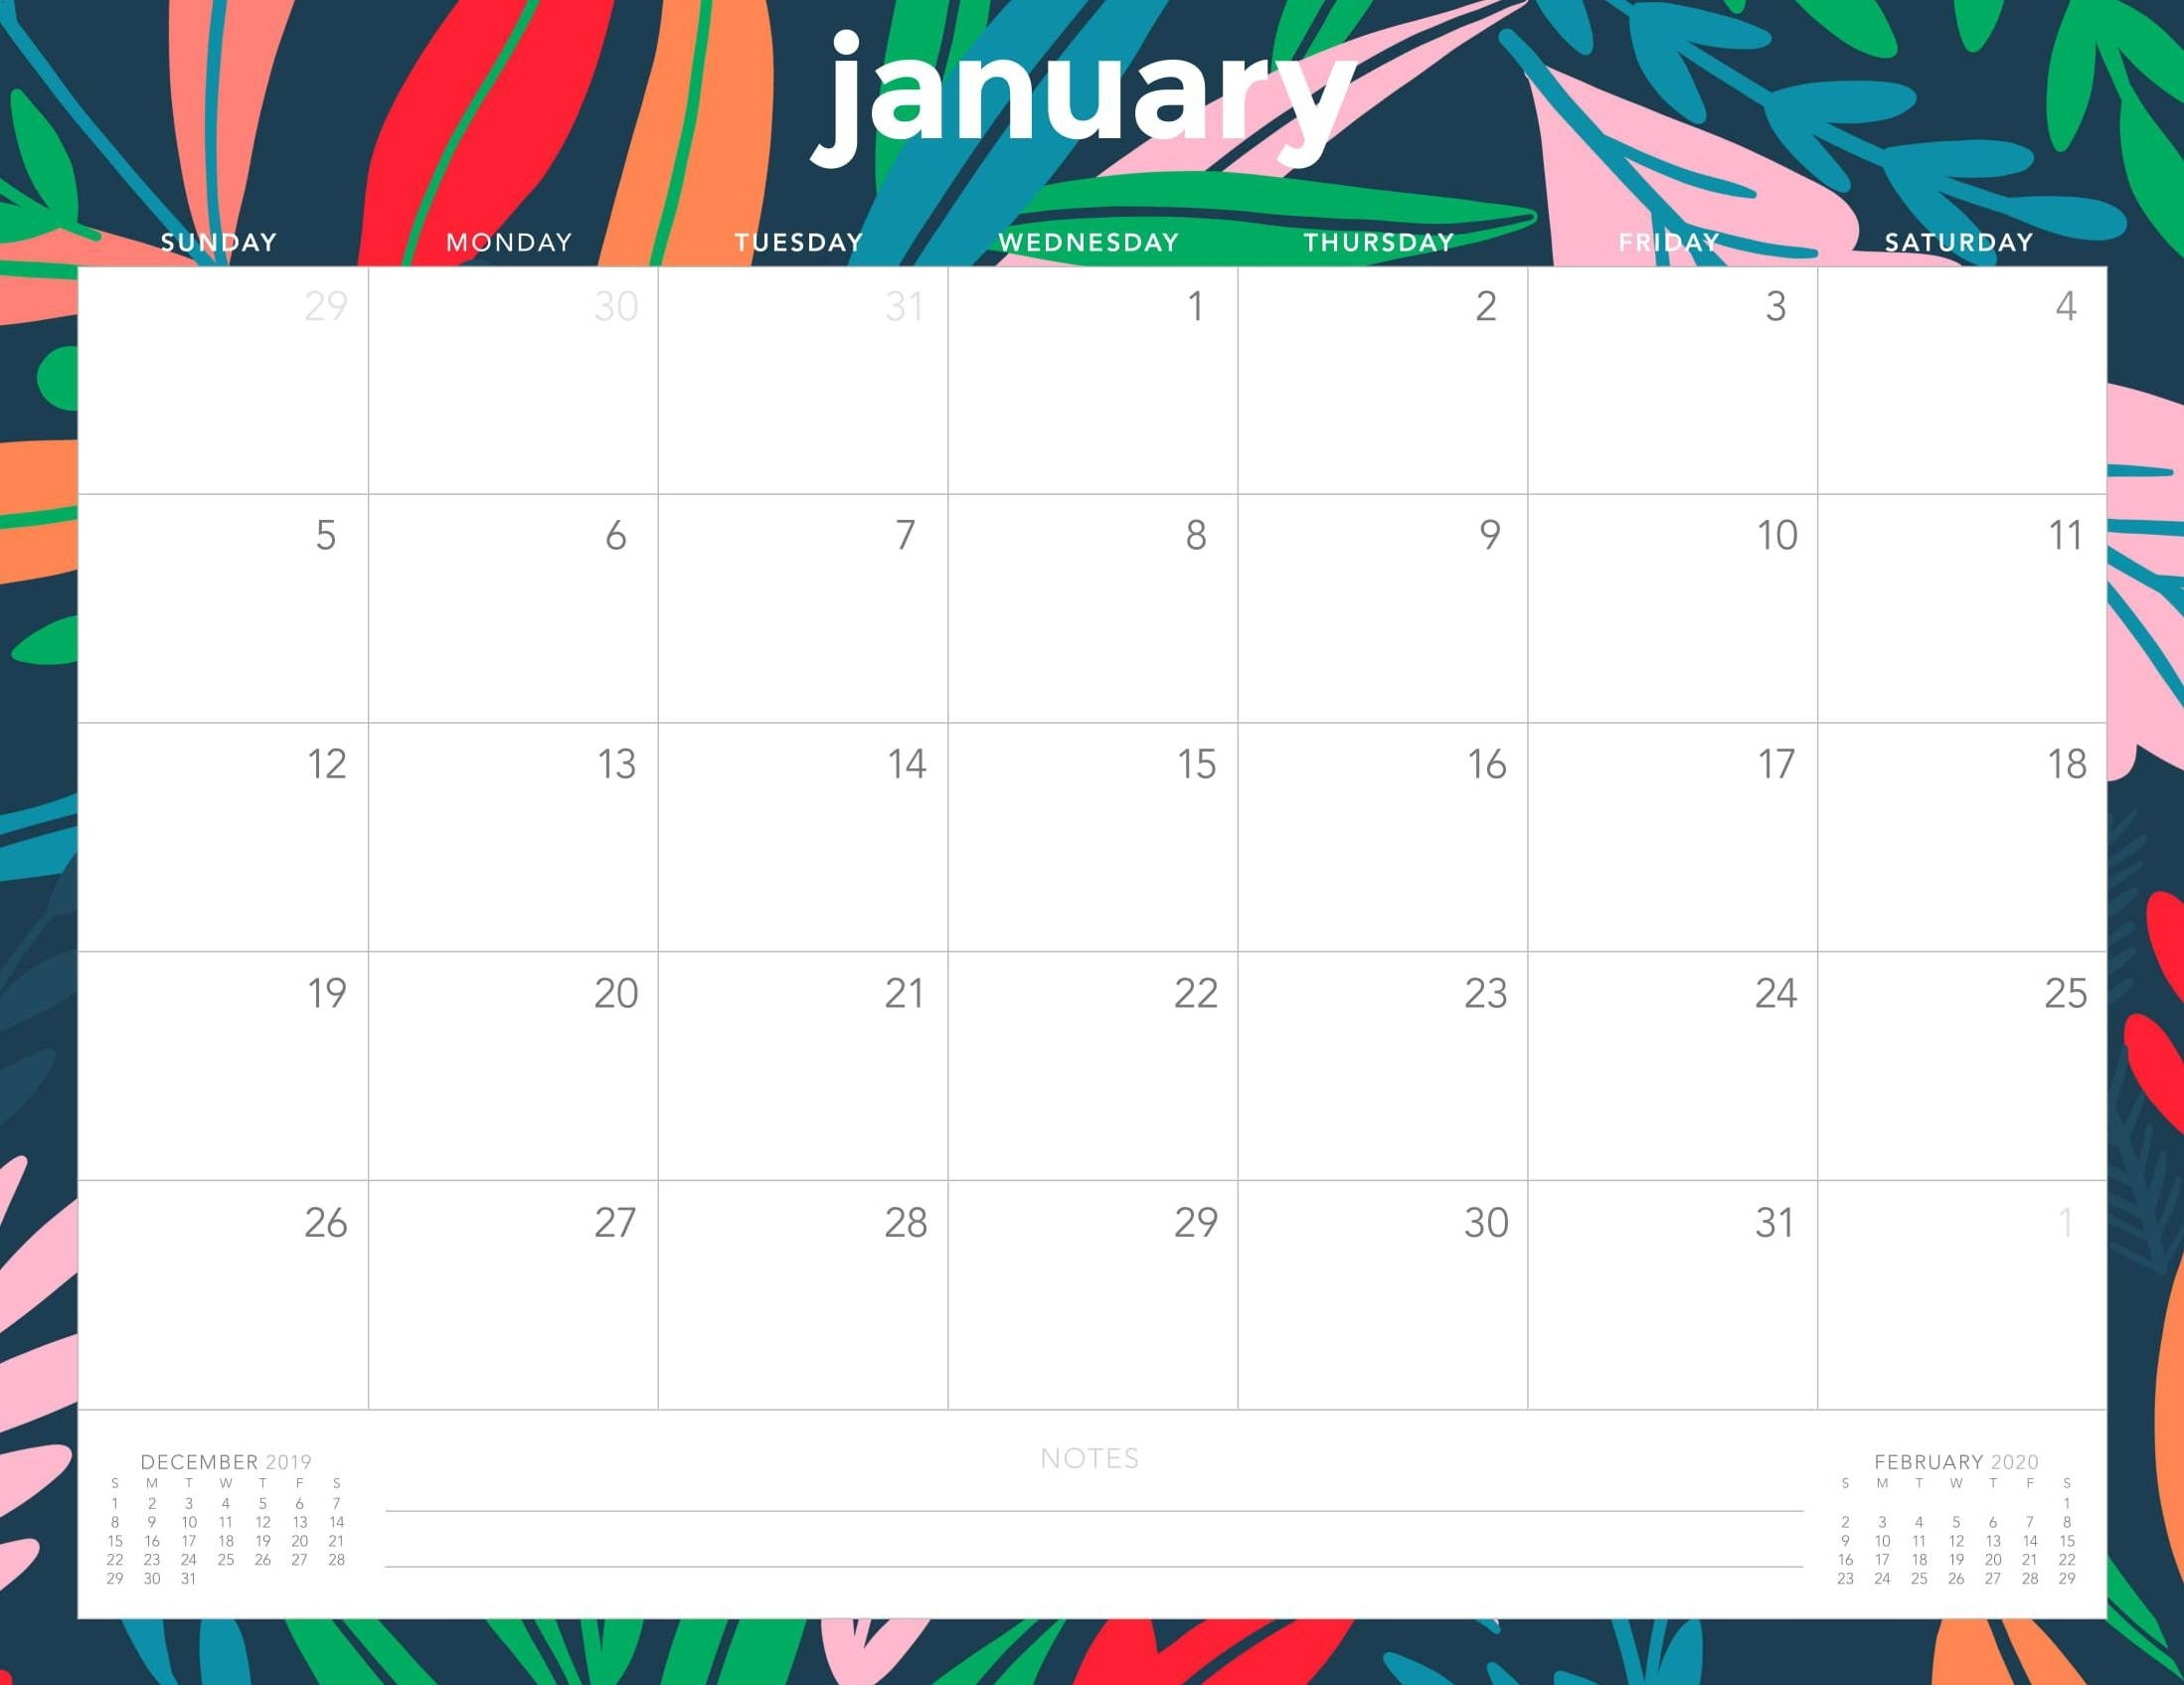 Monthly Calendar For January 2020 Template - Set Your Plan-Pretty Monthly Calendar 2020/2020